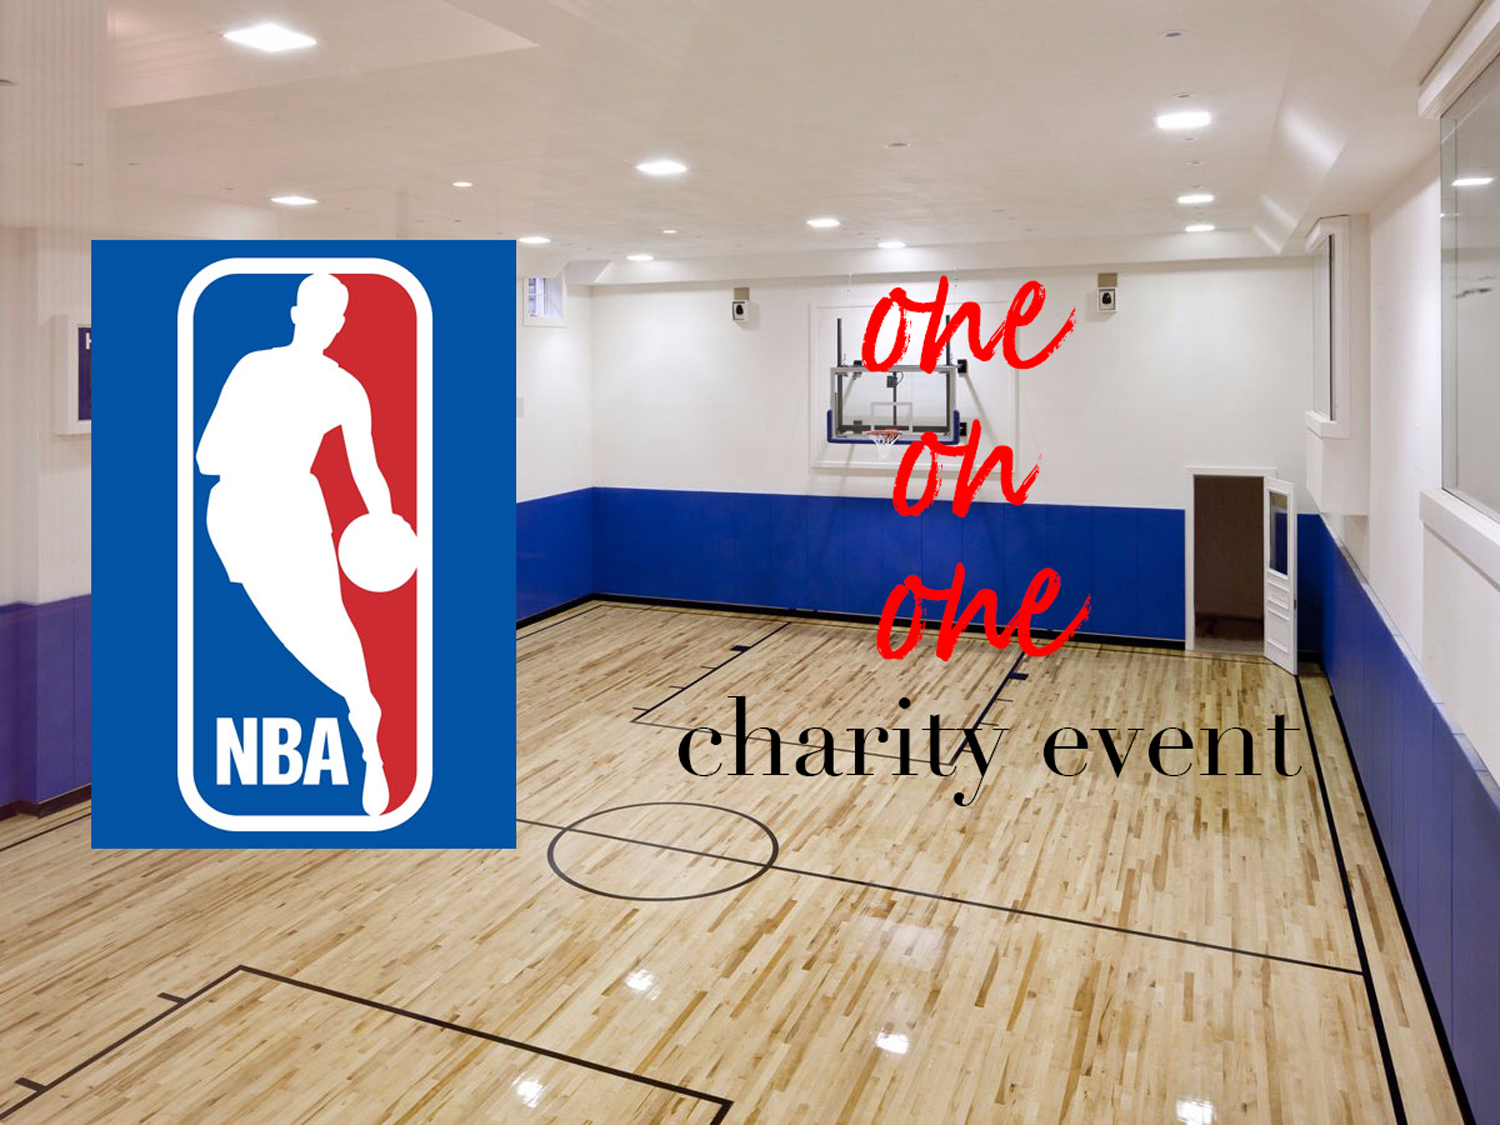 charity-event.jpg